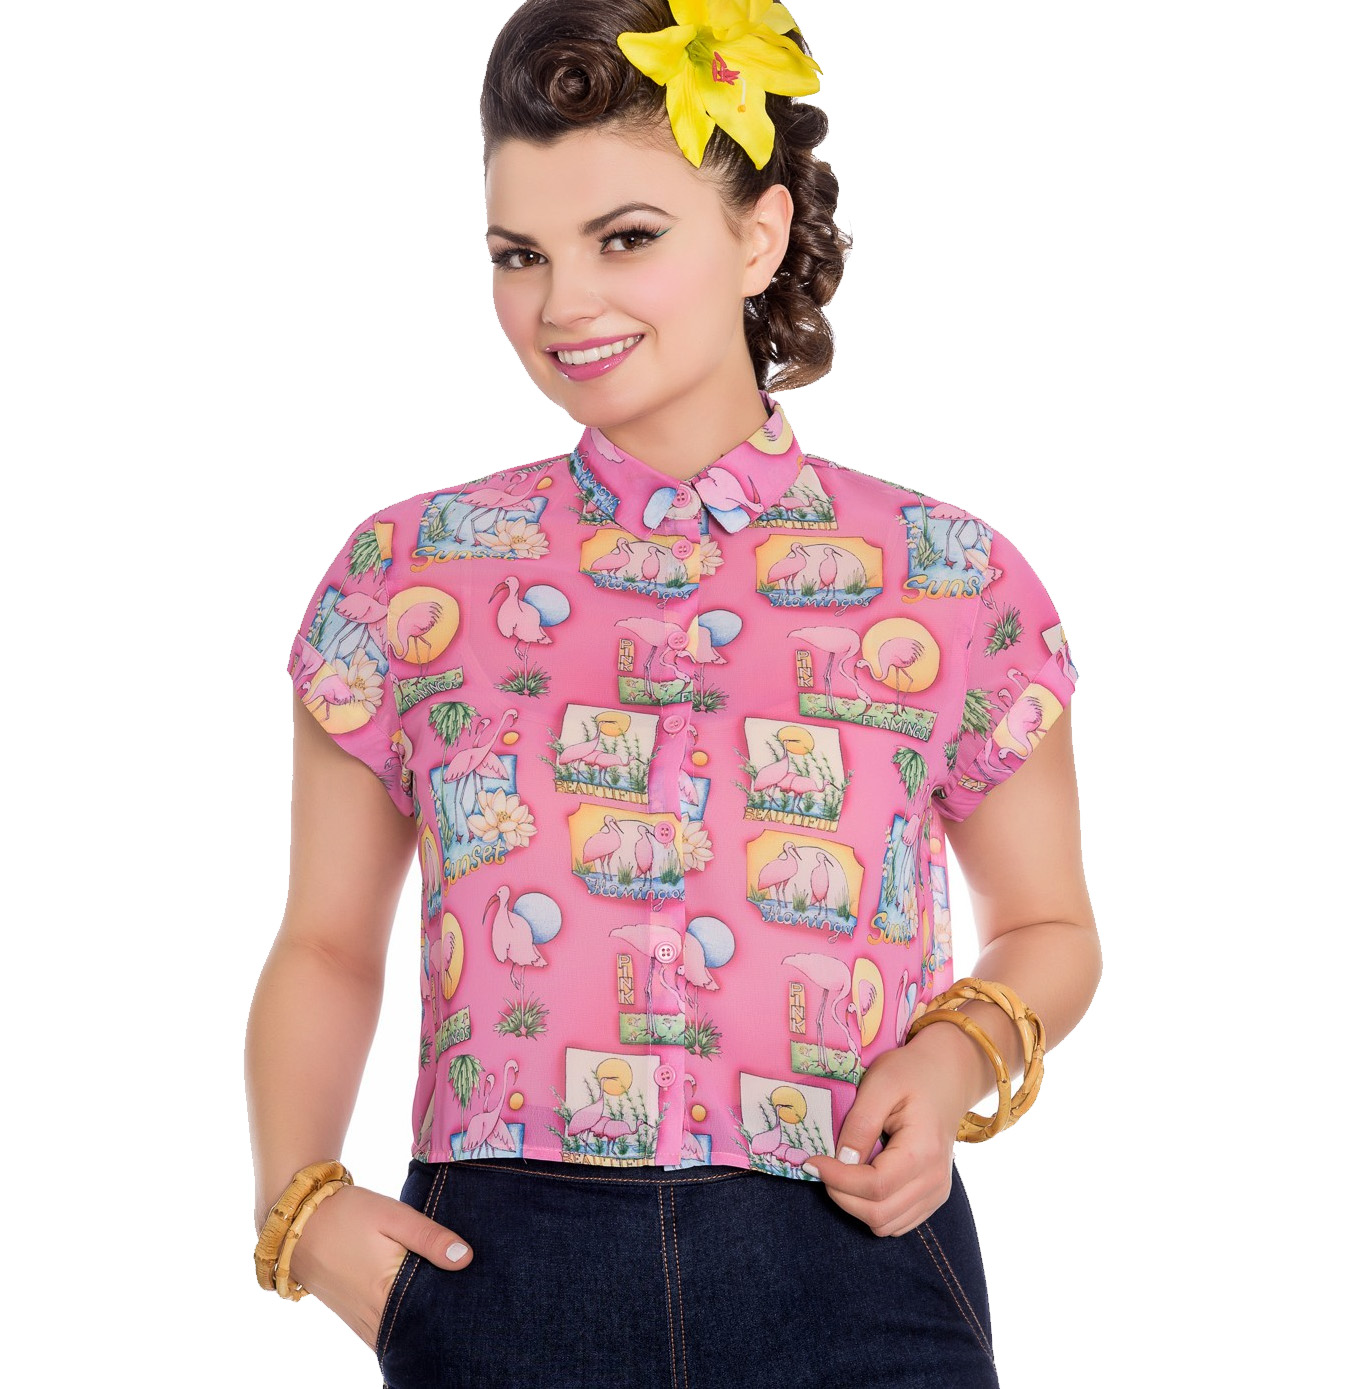 thumbnail 30 - Hell Bunny 50s Retro Top Pink Flamingo MAXINE Cropped Blouse Shirt All Sizes